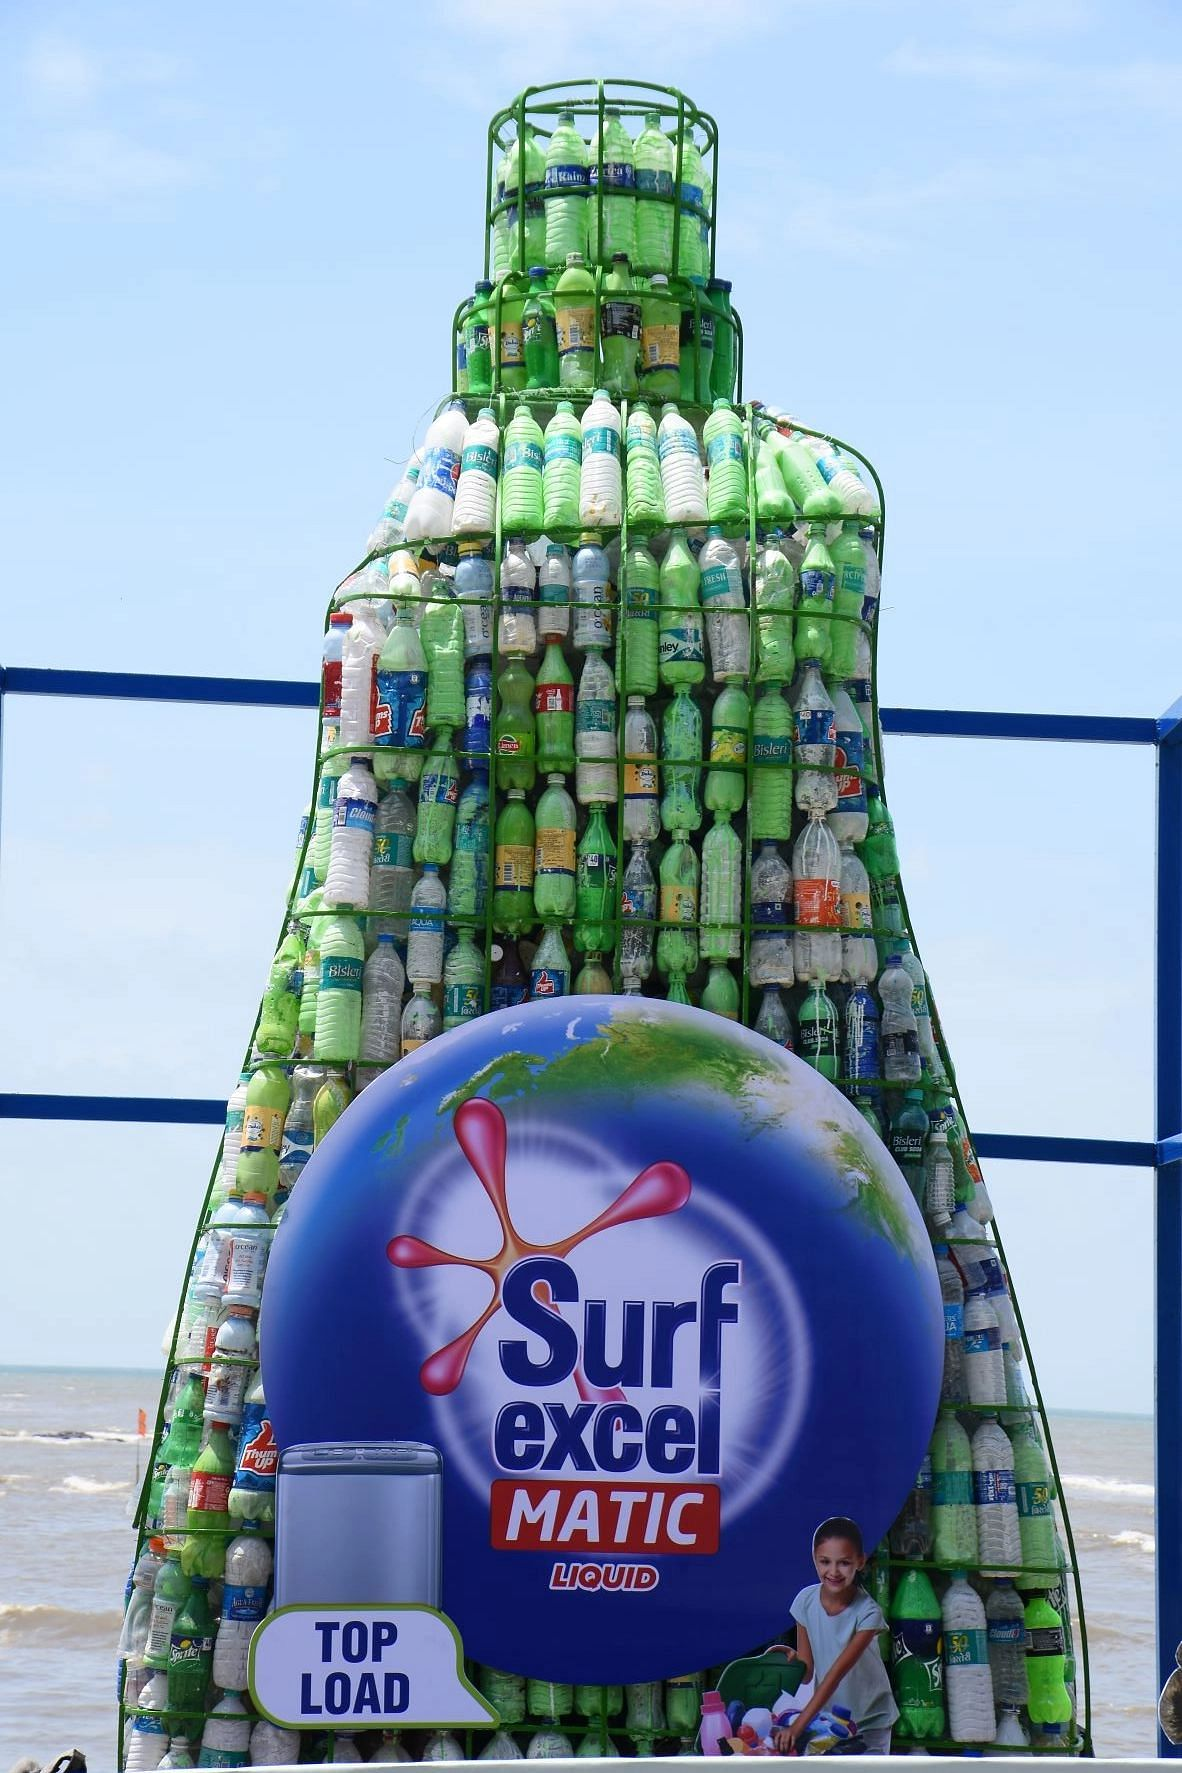 Surf Excel Matic's bottle installation aims to reduce plastic wastage